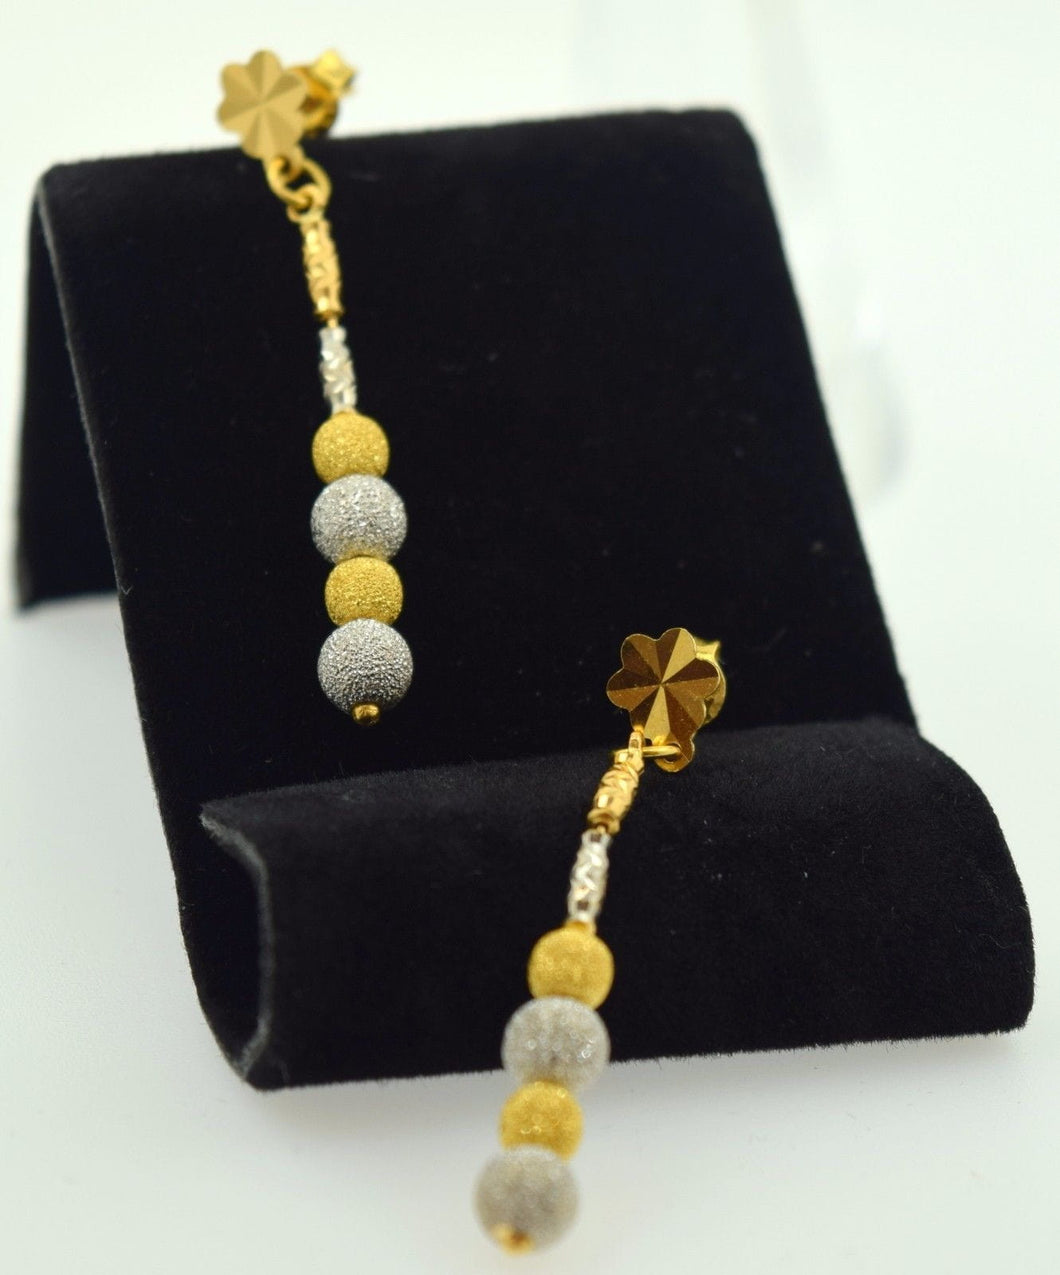 22k 22ct solid gold ELEGANT Long EARRINGS DANGLING HANGING FREE BOX E413 - Royal Dubai Jewellers